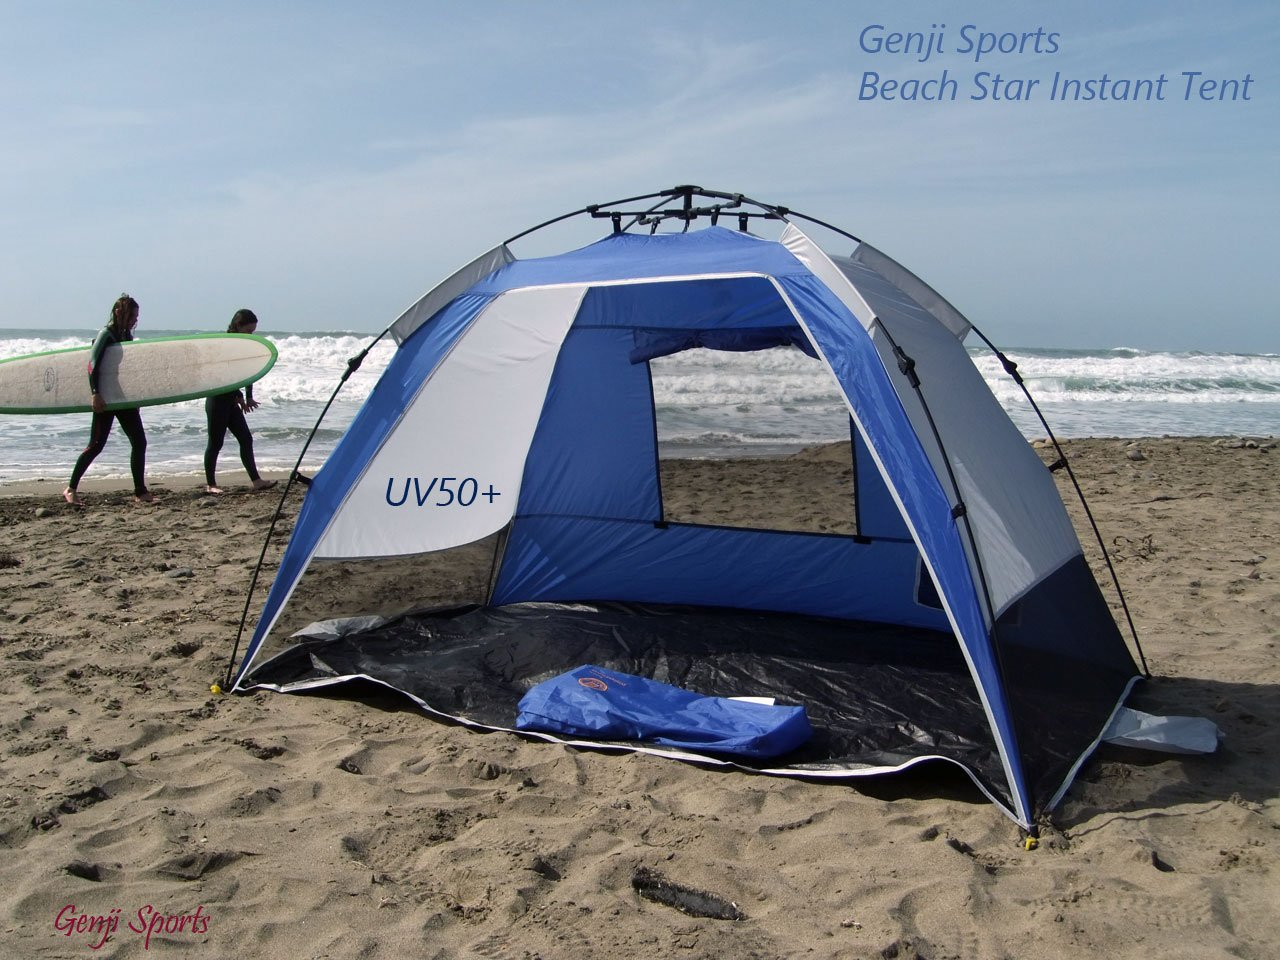 Amazon.com Genji Sports Instant Beach Star Tent Blue Sports u0026 Outdoors & Amazon.com: Genji Sports Instant Beach Star Tent Blue: Sports ...